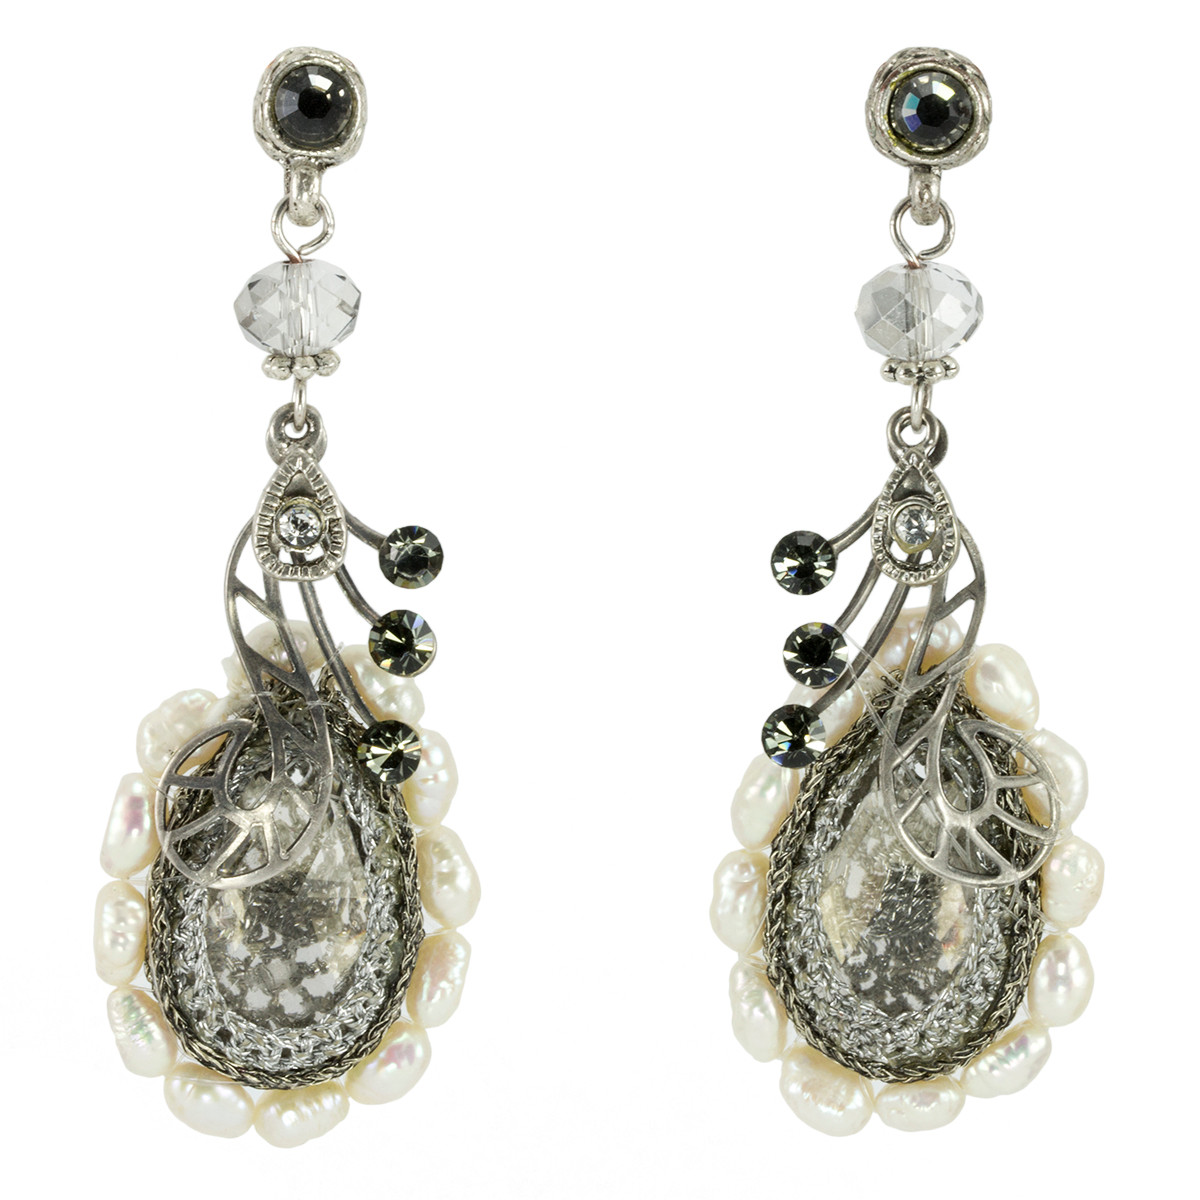 Anat Jewelry Silver Spark Nouveau Glam Earrings